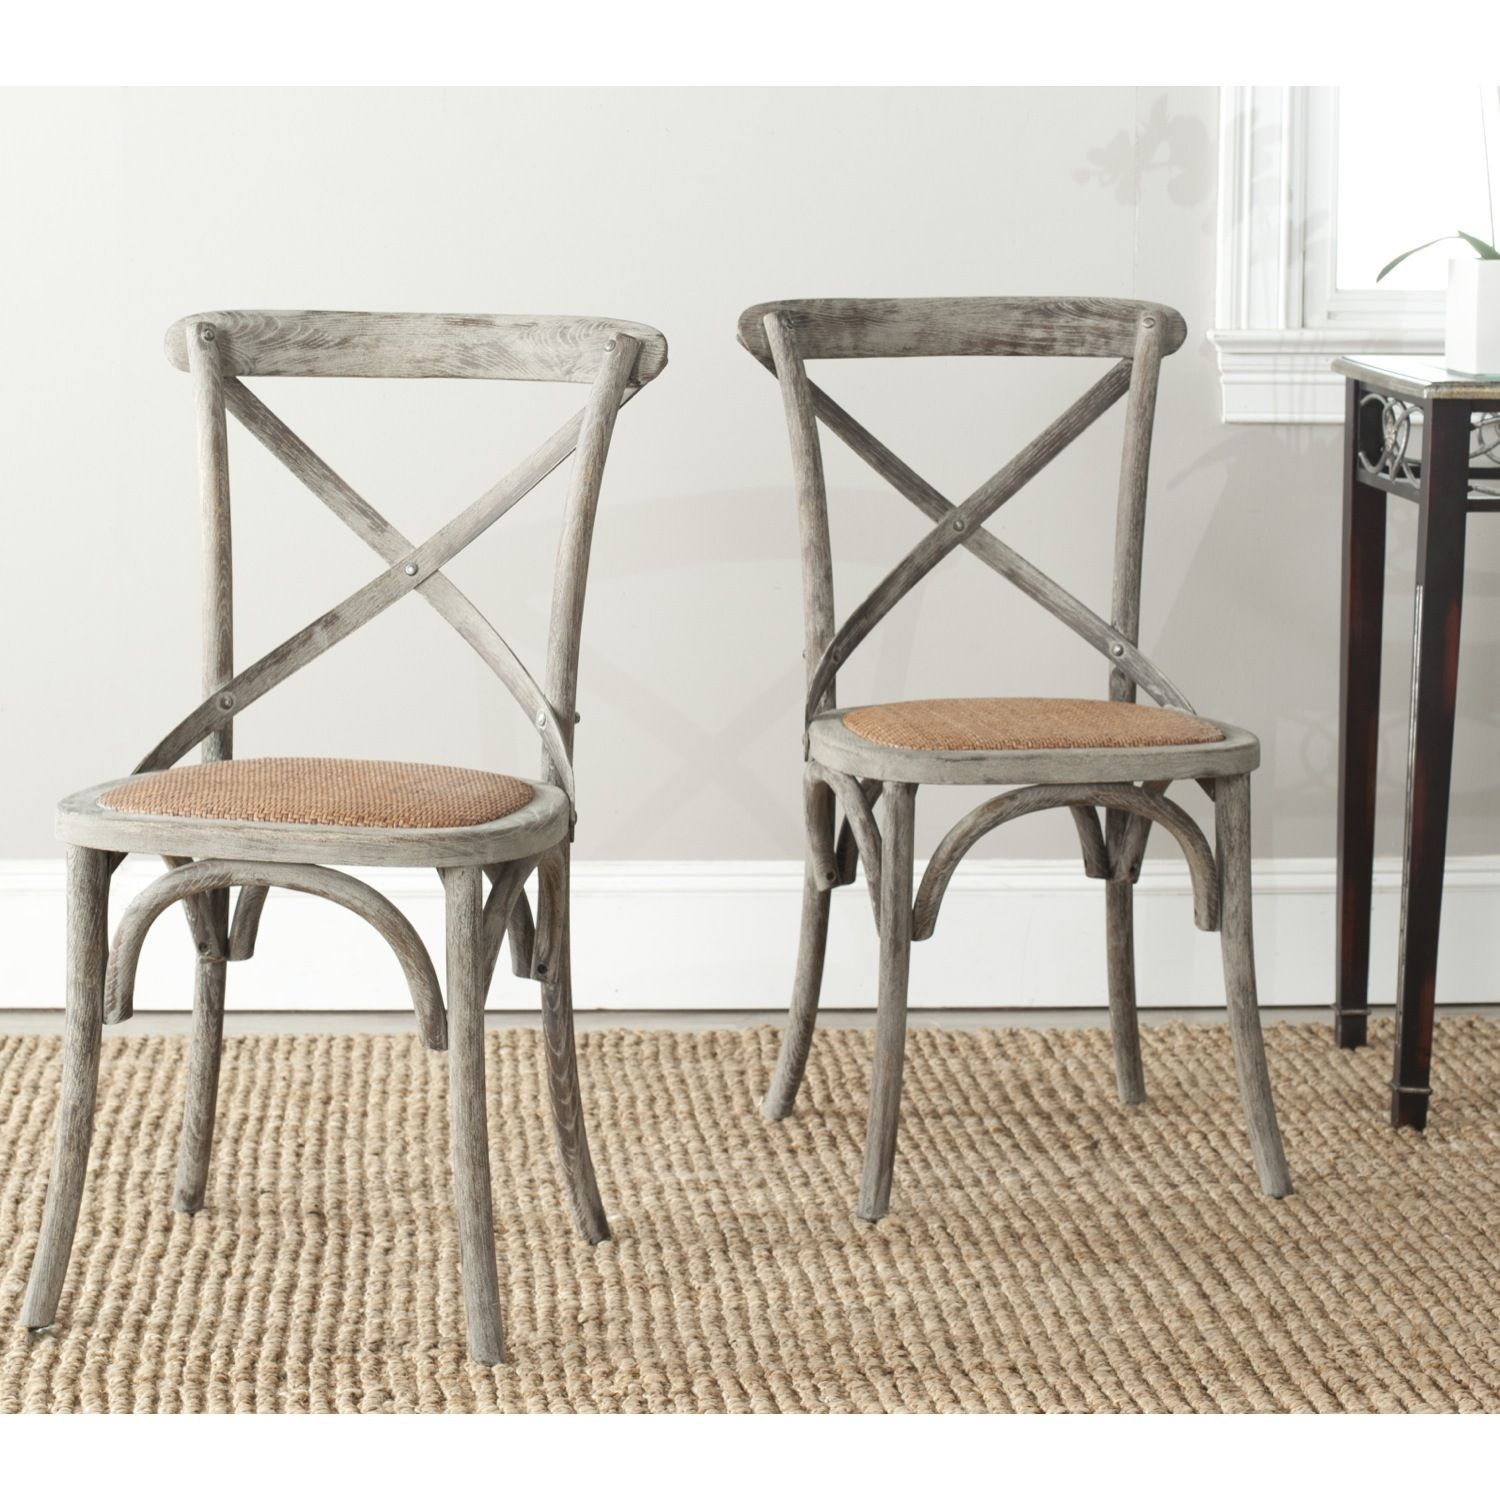 safavieh country classic dining franklin x back distressed safavieh country classic dining franklin x back distressed colonial grey oak chairs set of 2 by safavieh